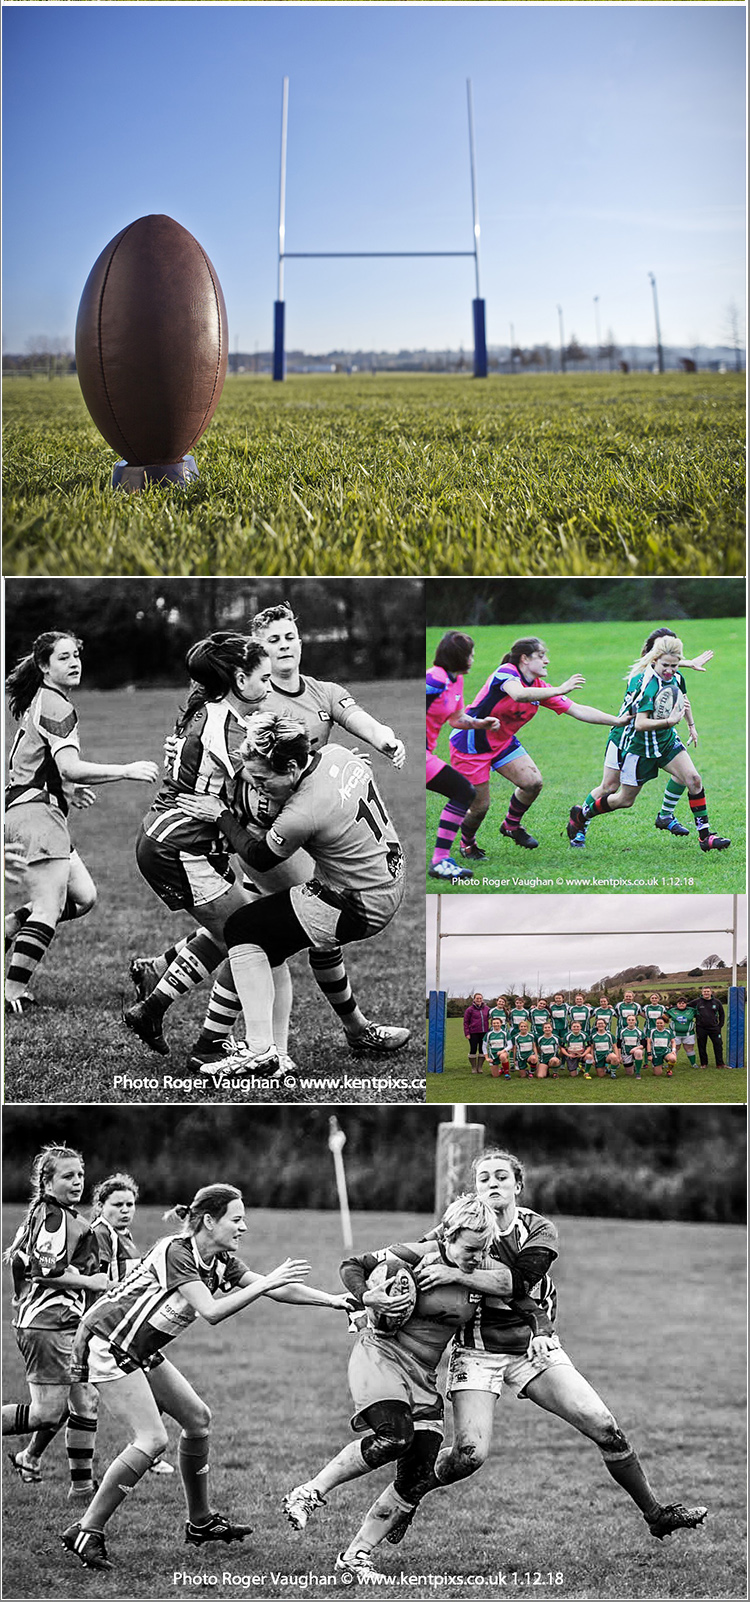 A day of high action Rugby photography with the Salisbury Womens Rugby Club, Saturday 13th April 2019